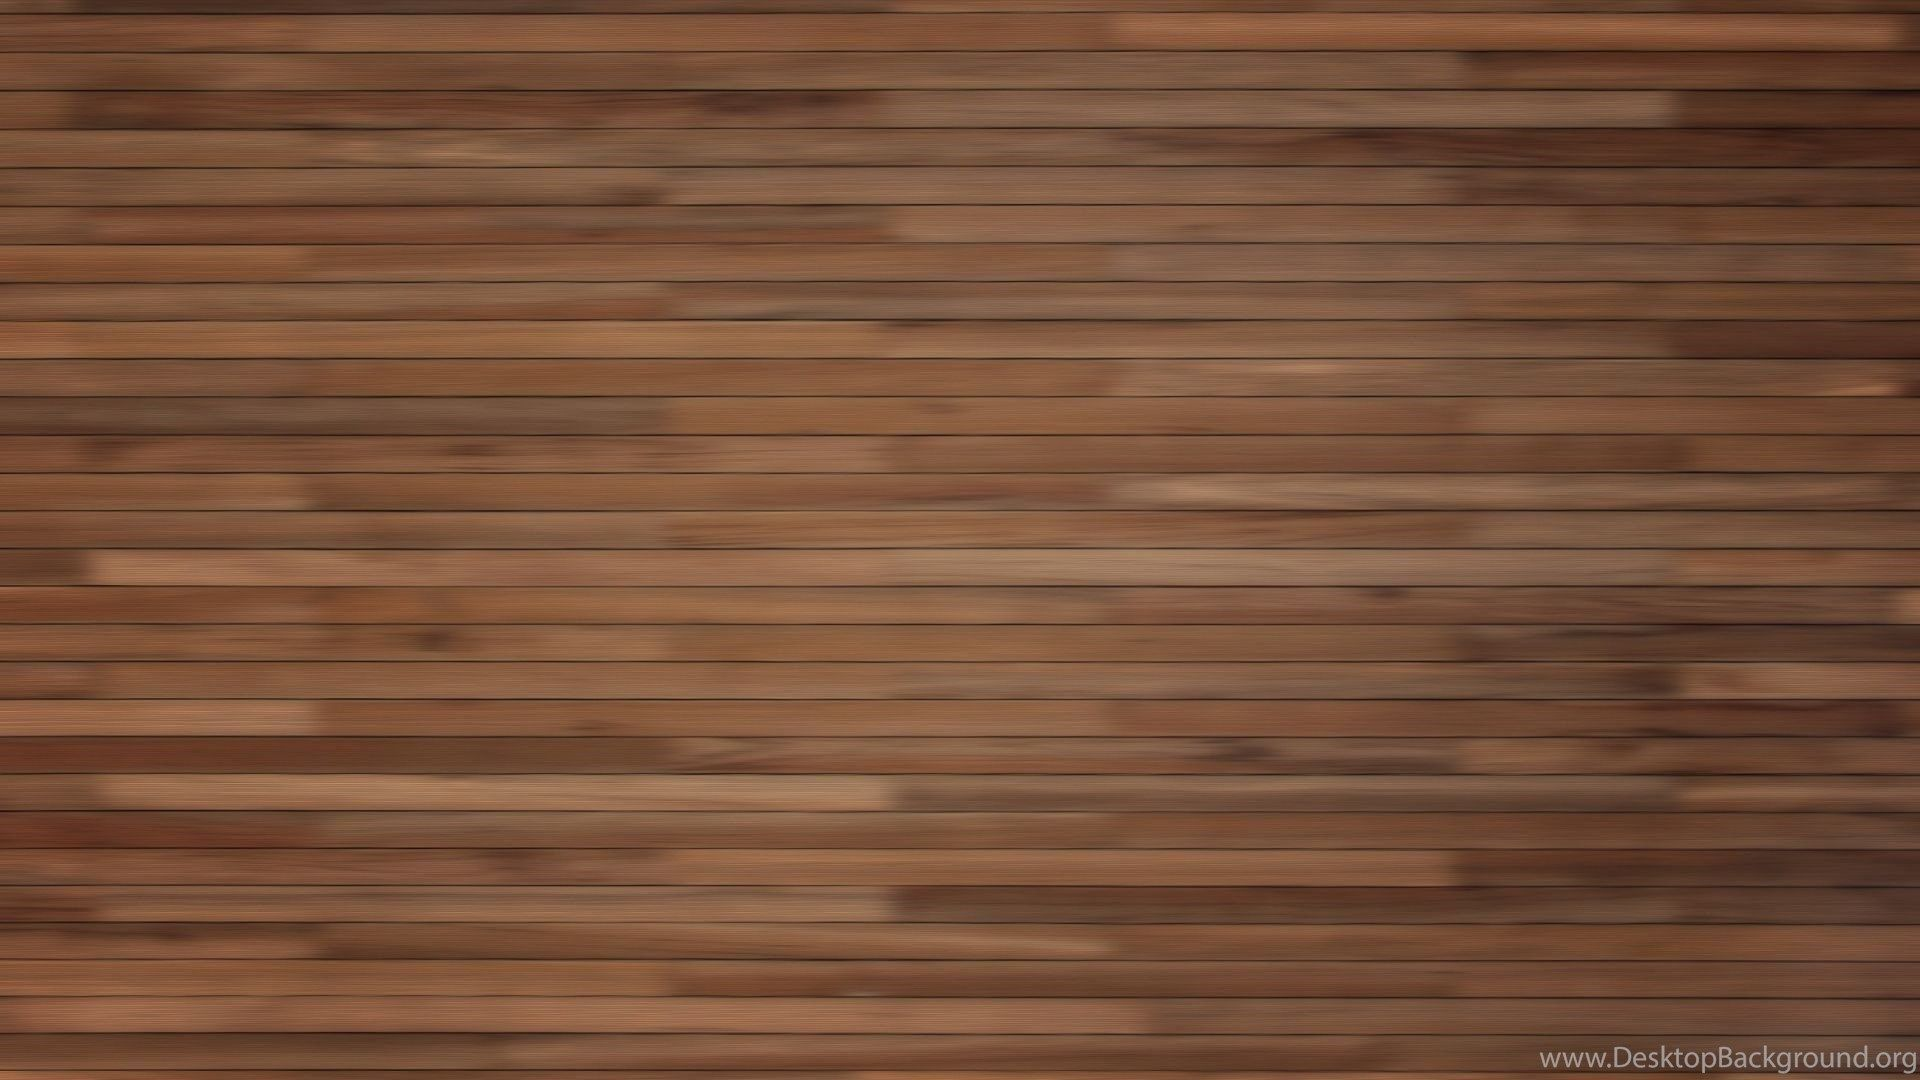 Full HD 1080p Wood Wallpapers HD, Fondos de escritorio 1920x1080